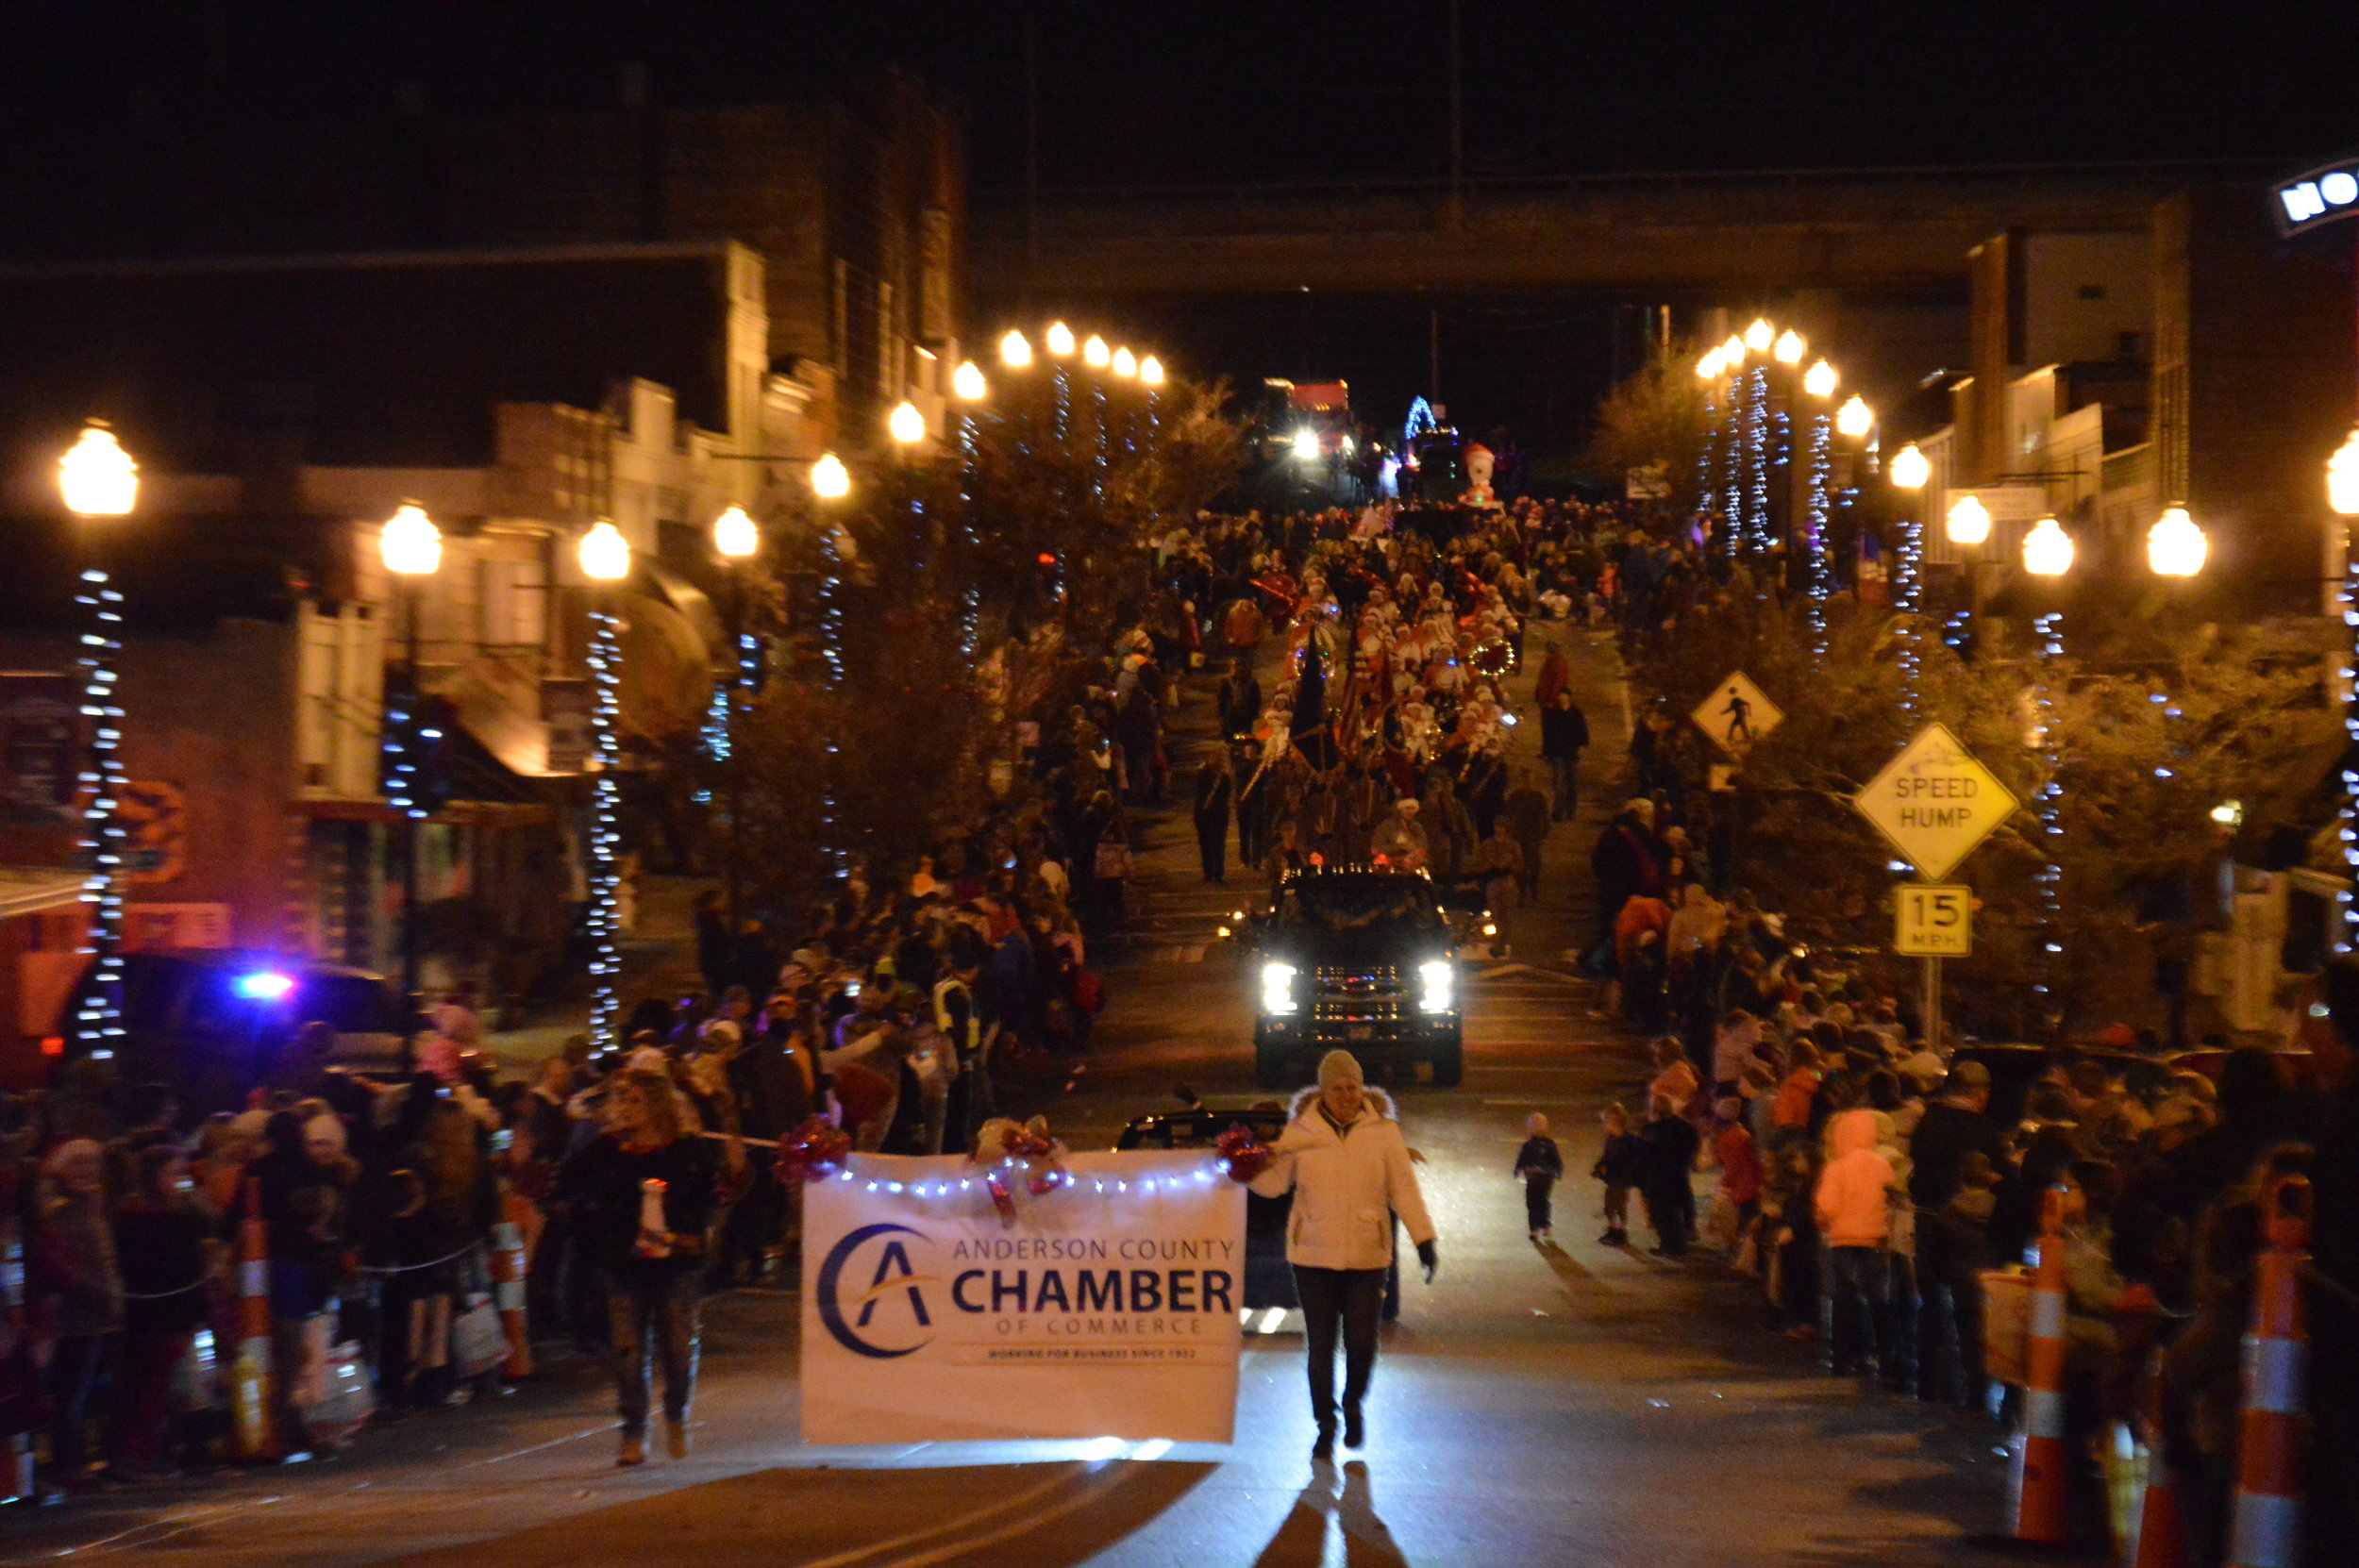 The Anderson County Chamber of Commerce sponsors the annual Christmas Parade that rolls through Downtown Clinton in December.